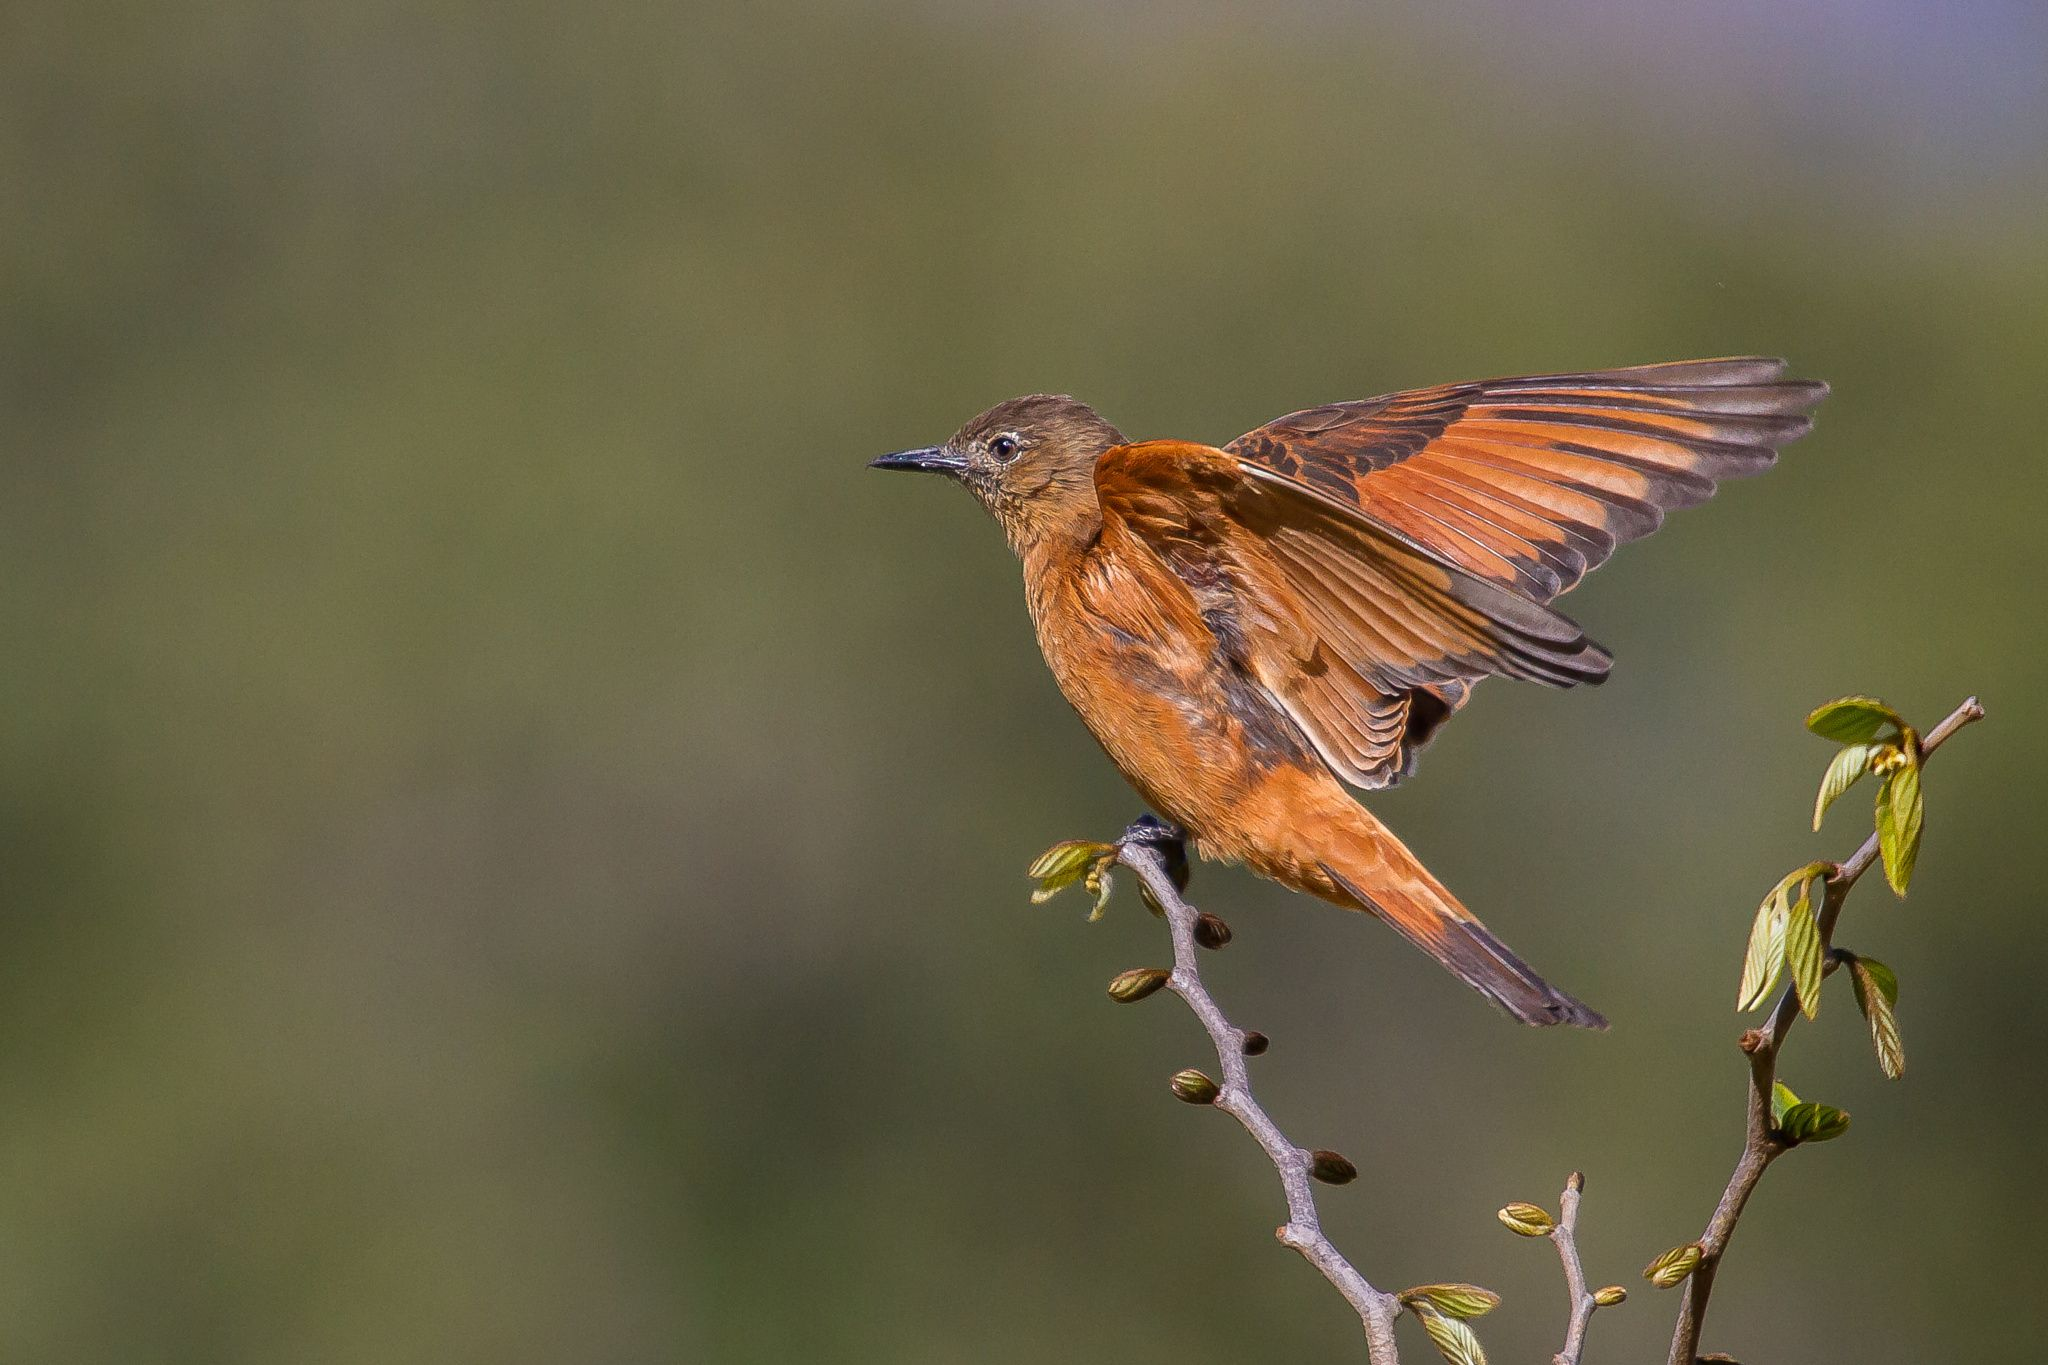 Cliff Flycatcher by Bertrando Campos on 500px